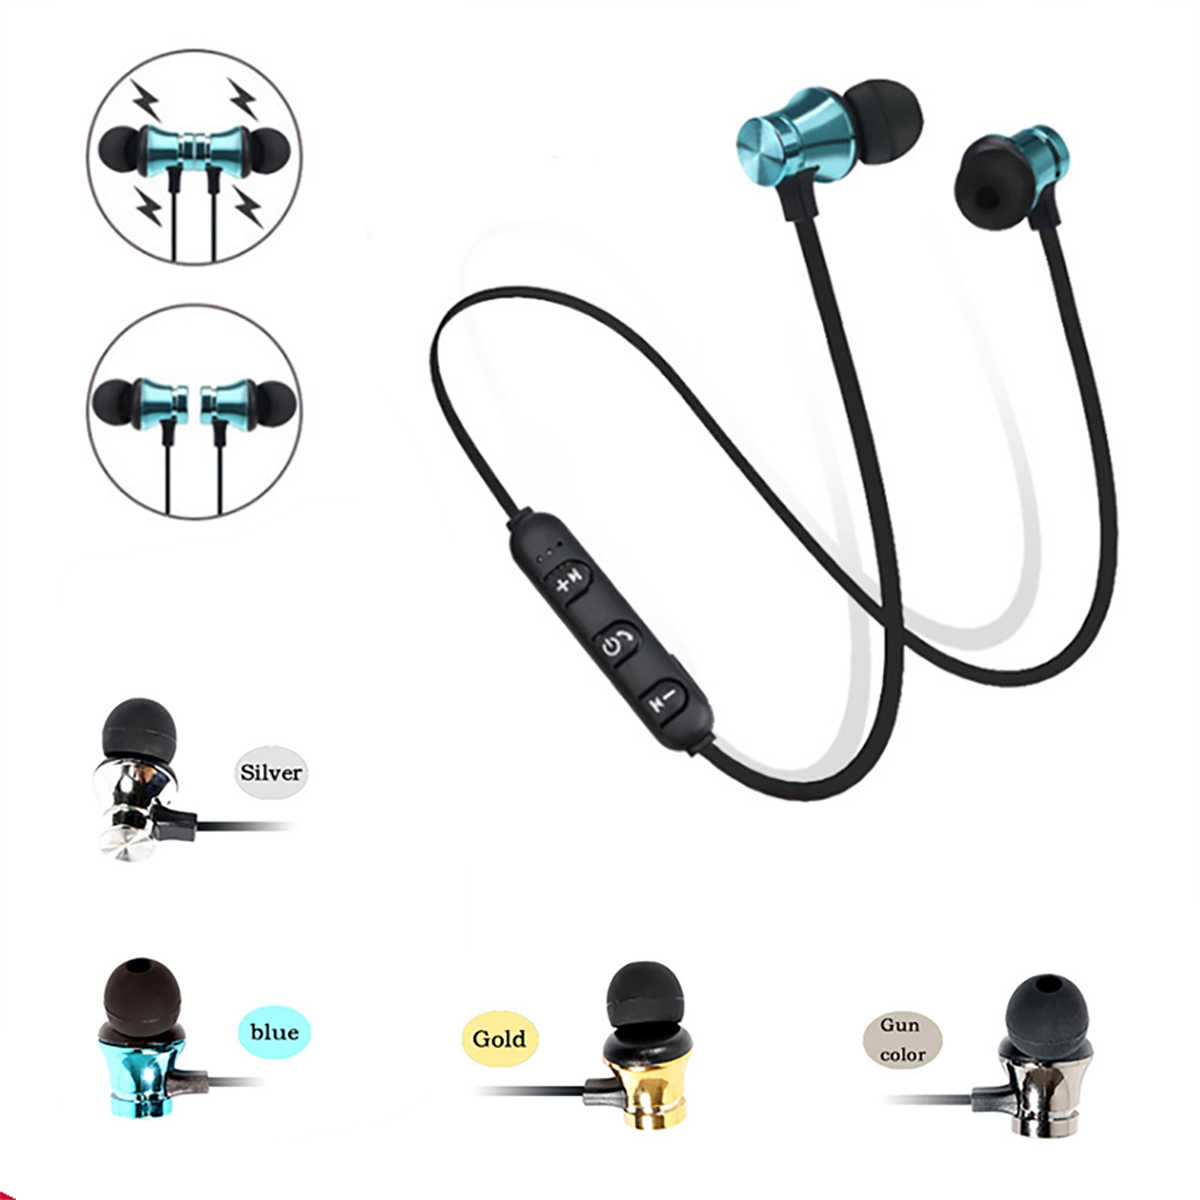 Bluetooth Earphone Olahraga Handsfree Headphone Nirkabel Earphone Magnetik Headset dengan Mikrofon untuk Ponsel Xiaomi